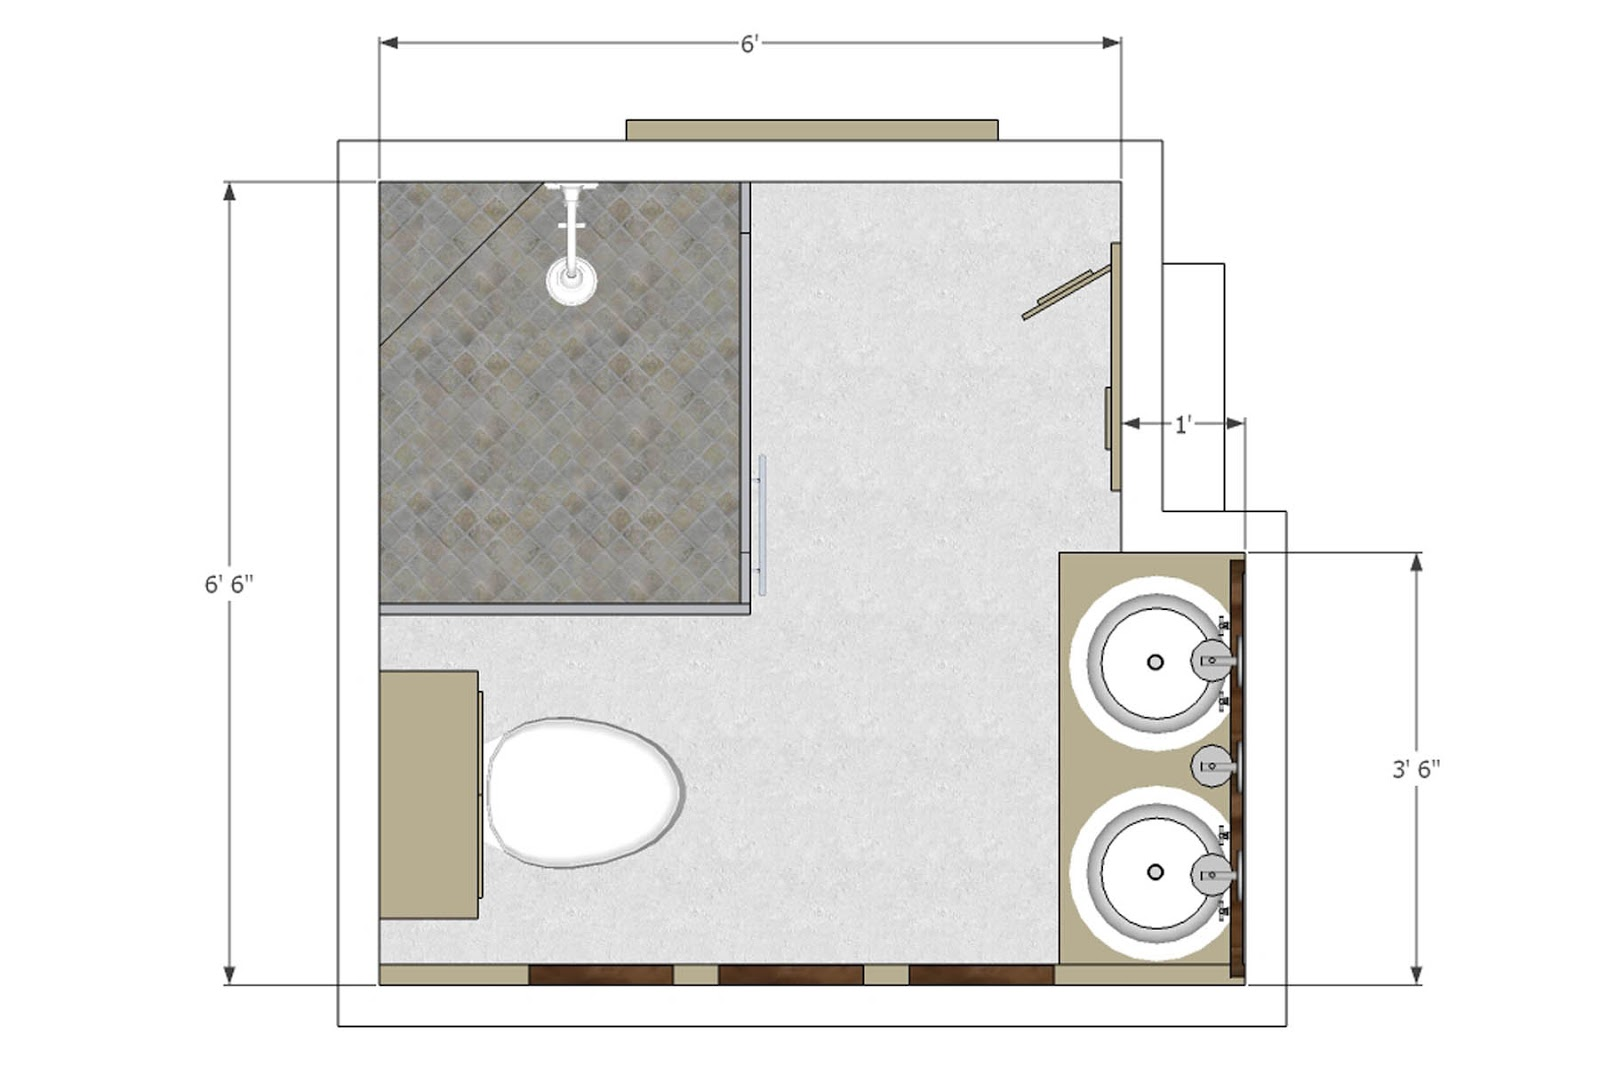 bathroom plan layout sharing few bathroom layouts which i got on net ...